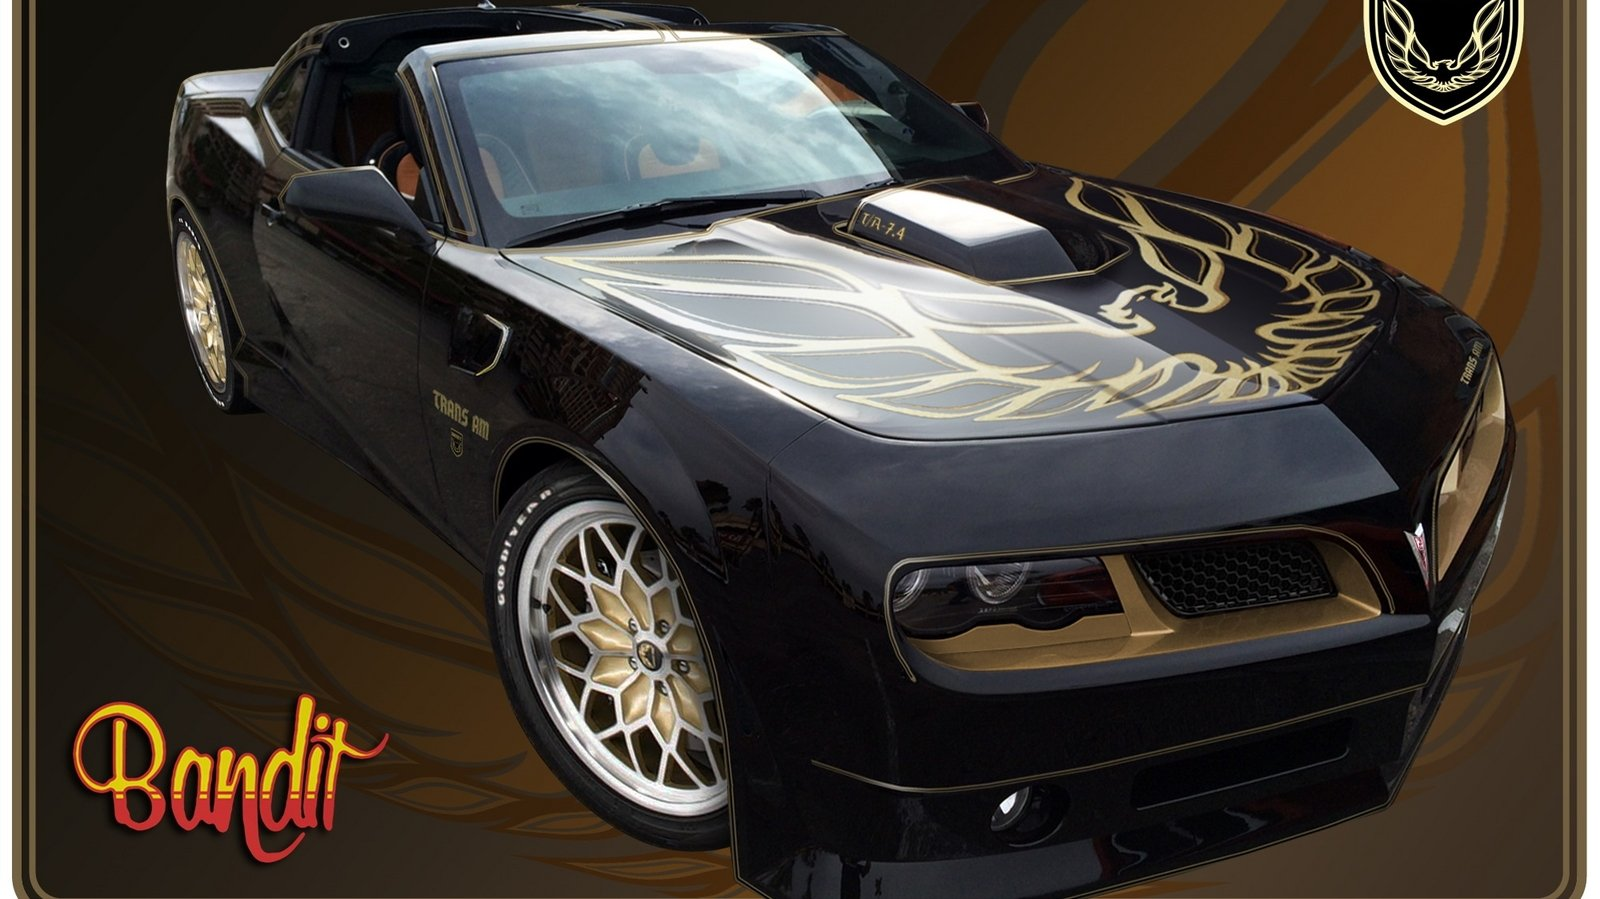 The New Bandit Trans Am Video 2016 2017 Best Cars Review 2017 2018 Best Cars Reviews